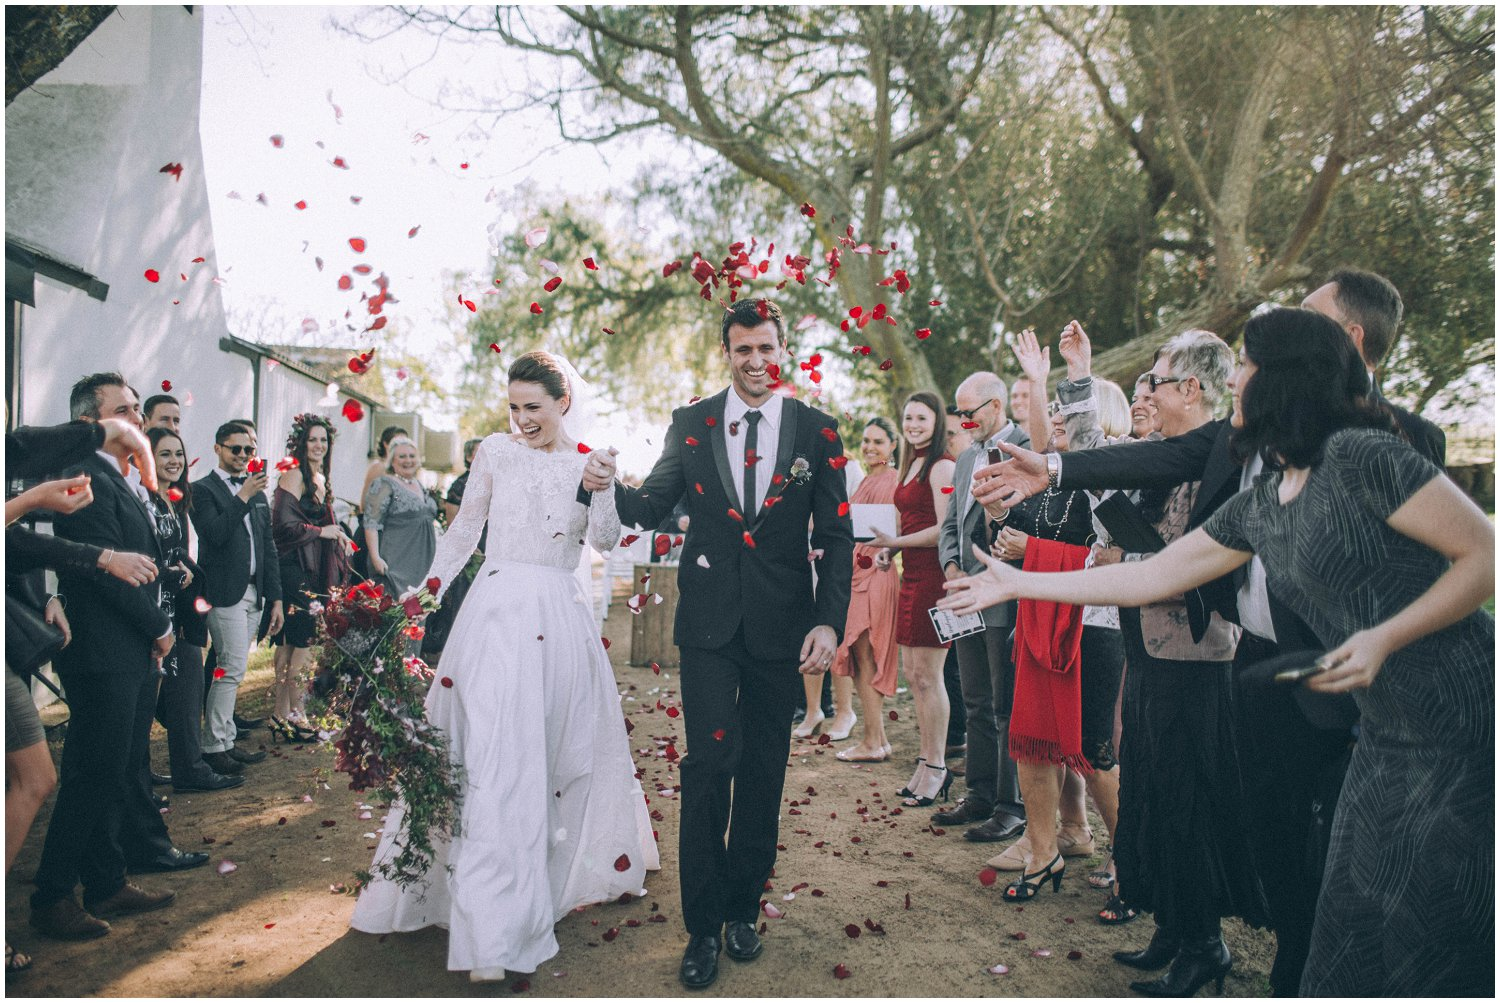 Top Wedding Photographer Cape Town South Africa Artistic Creative Documentary Wedding Photography Rue Kruger_1209.jpg